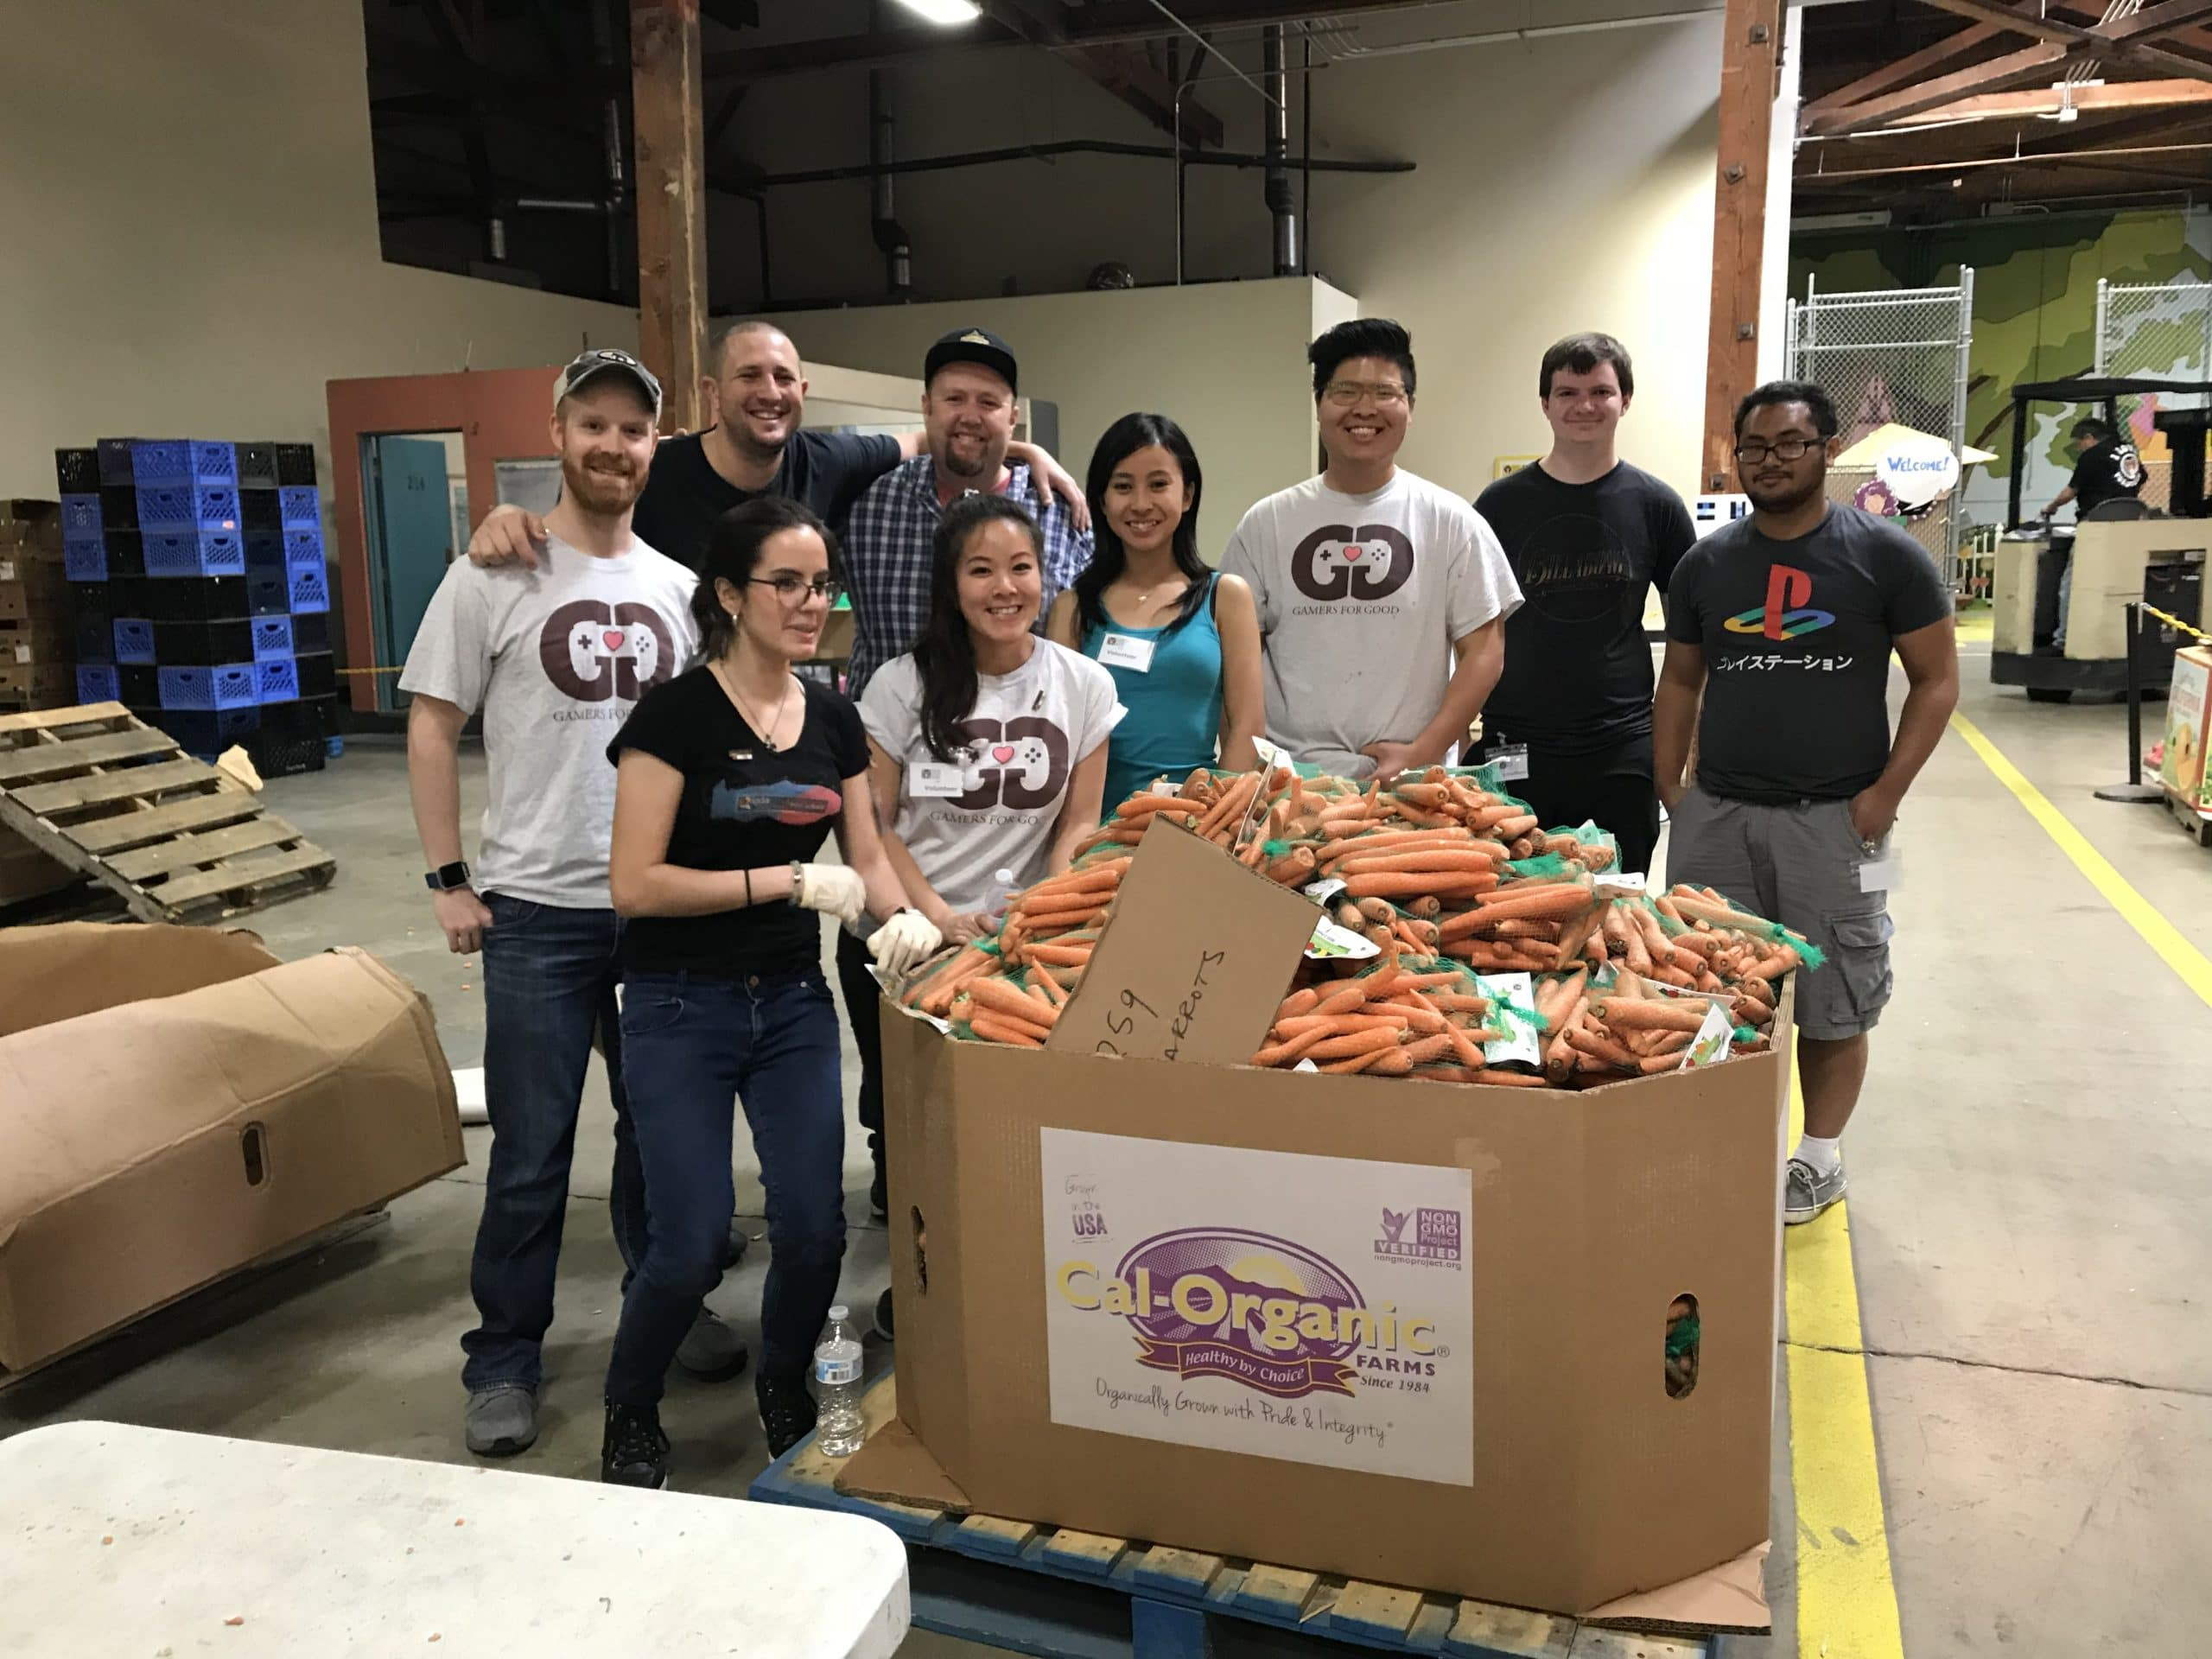 G4G volunteers @ OC 2nd Harvest Food Bank May 2018